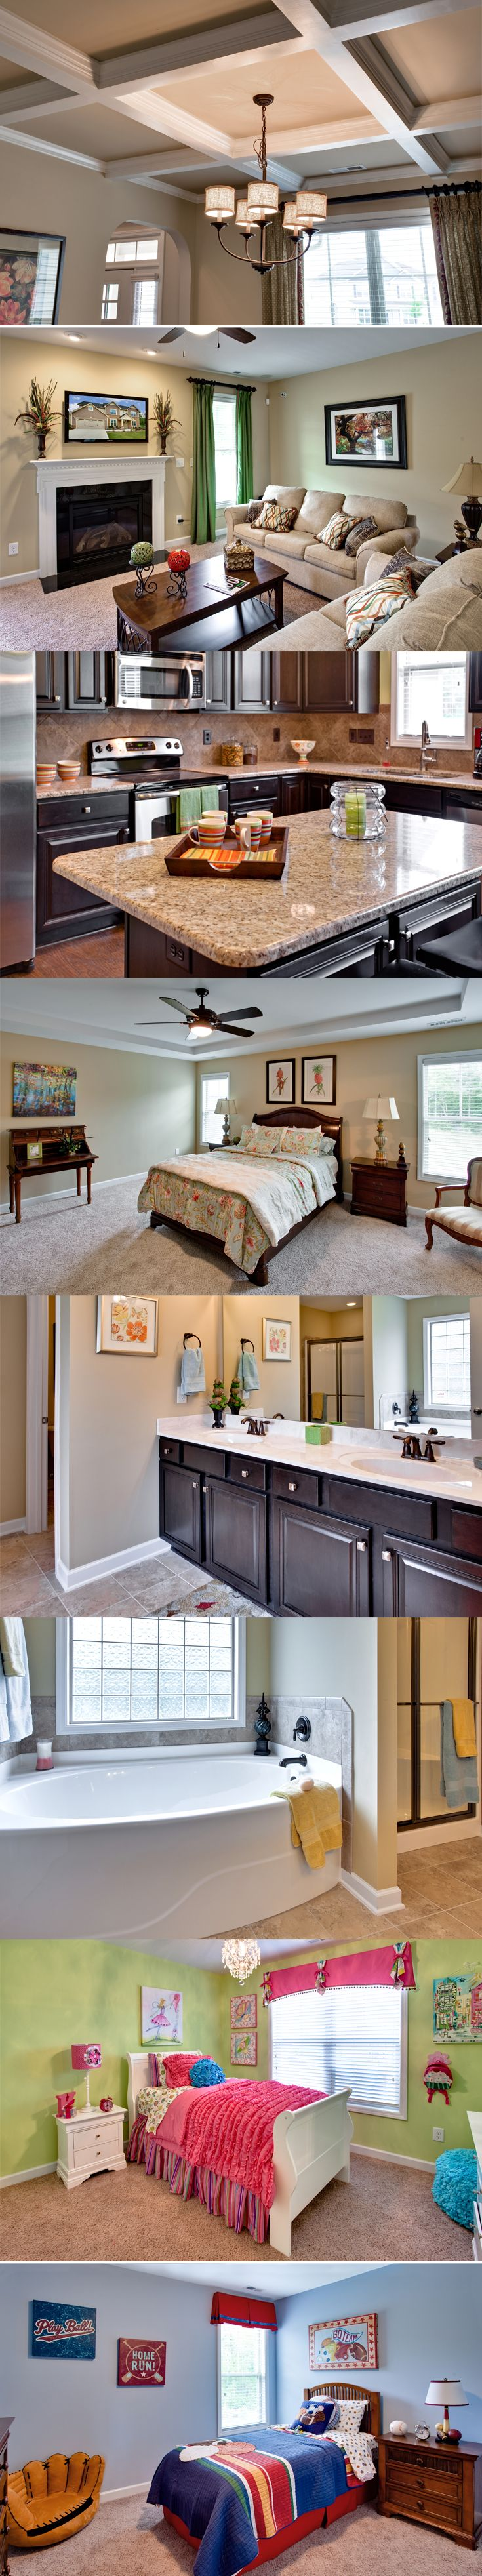 one of our fantastic model homes which room is your favorite